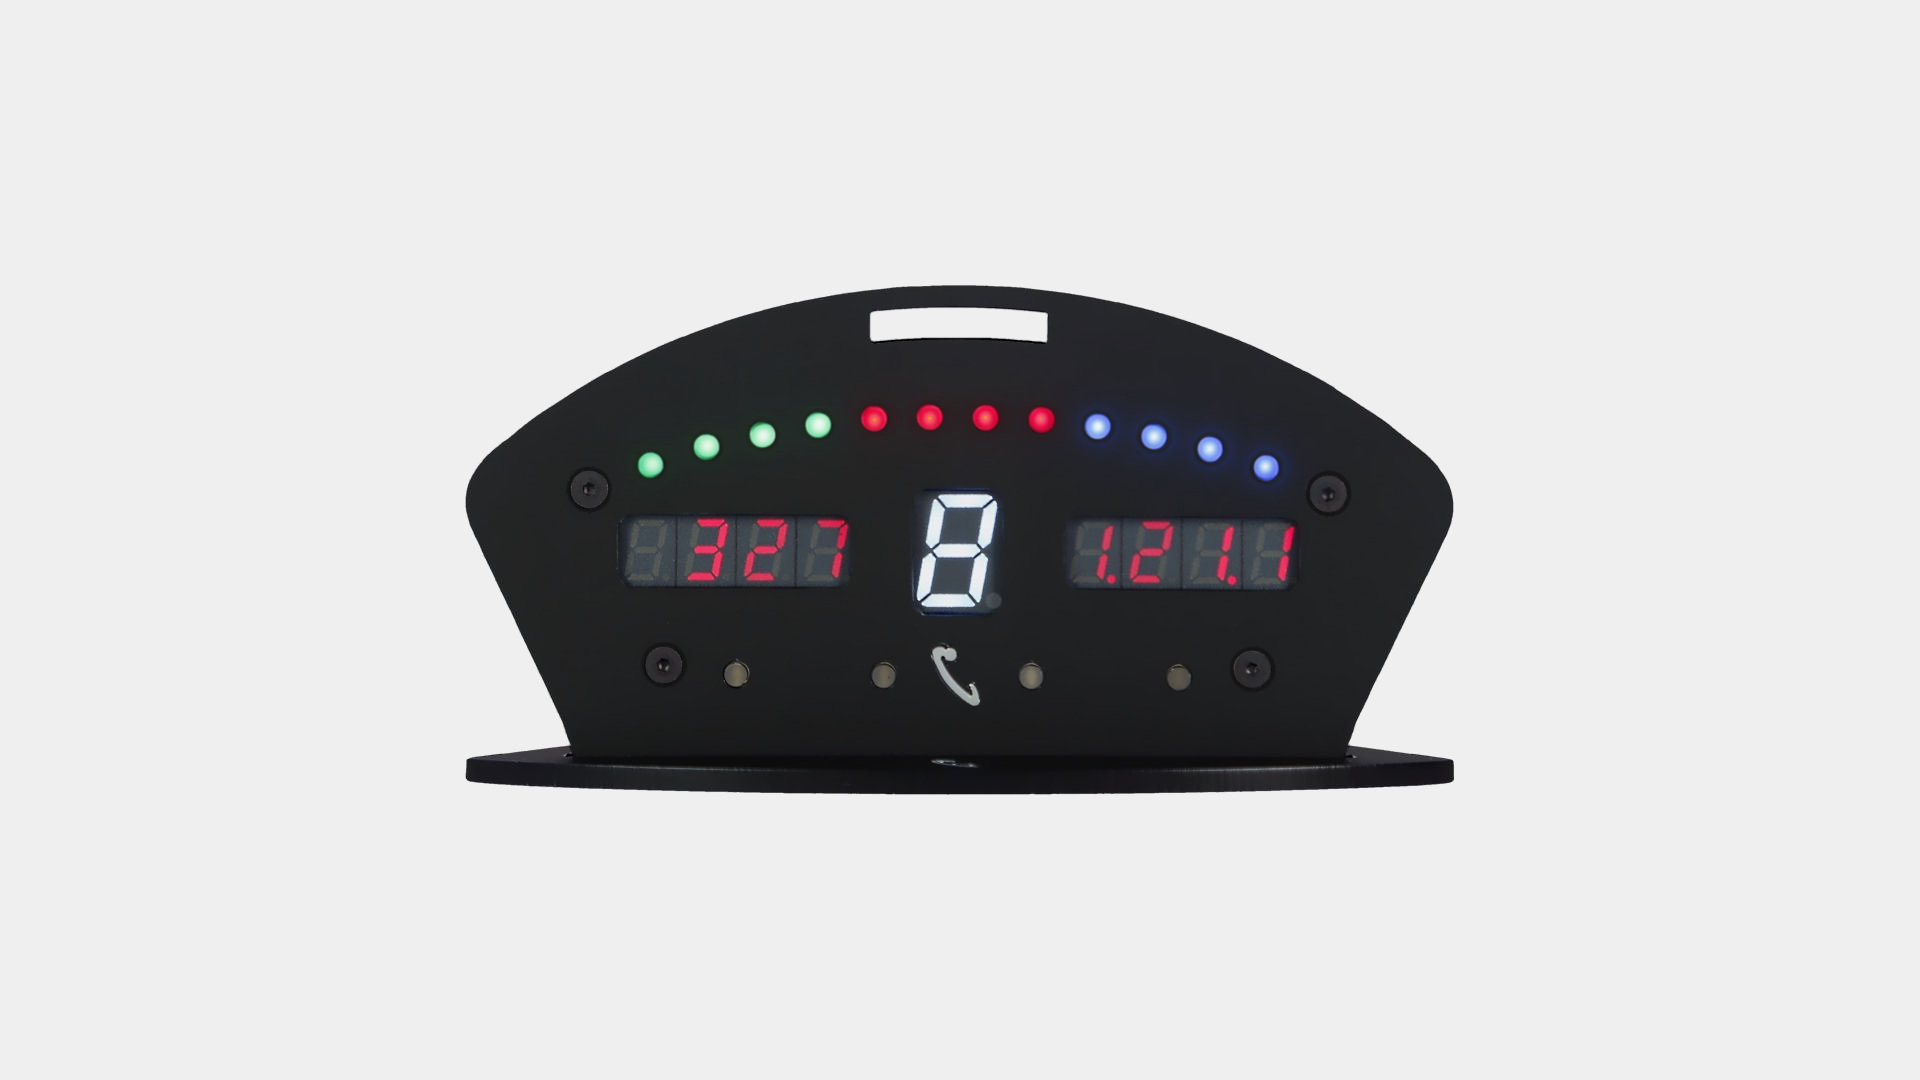 srd-9c-dashboard-display